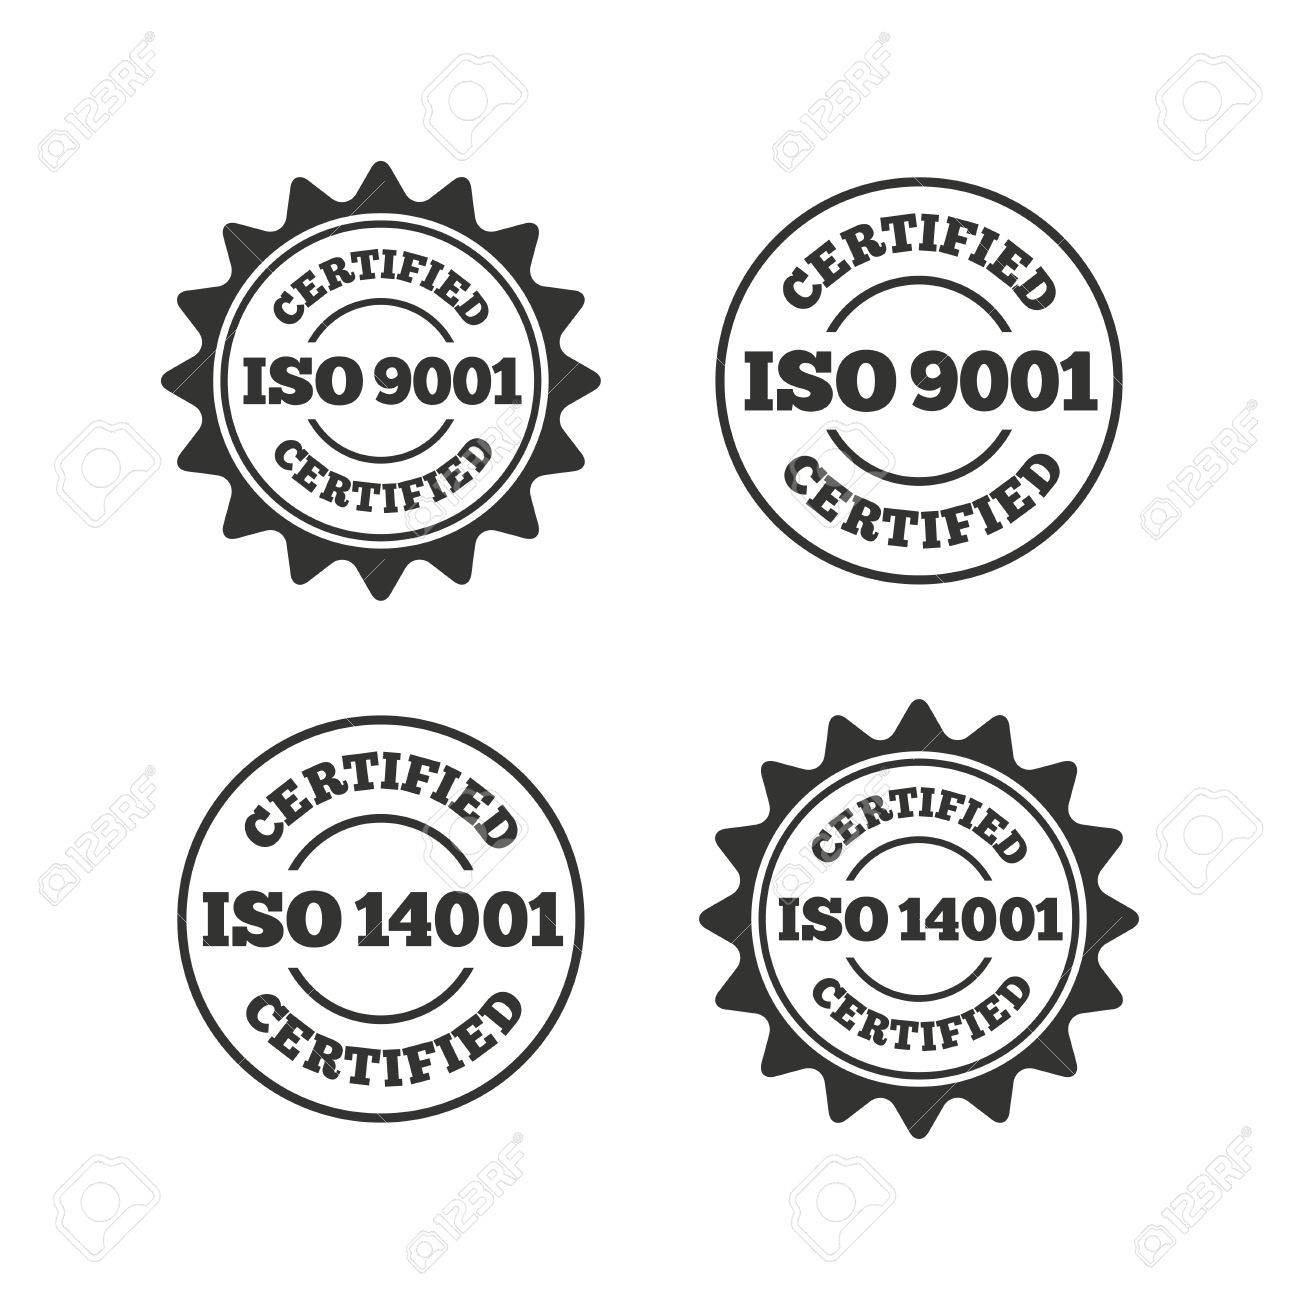 Iso 9001 and 14001 certified icons certification star stamps iso 9001 and 14001 certified icons certification star stamps symbols quality standard signs buycottarizona